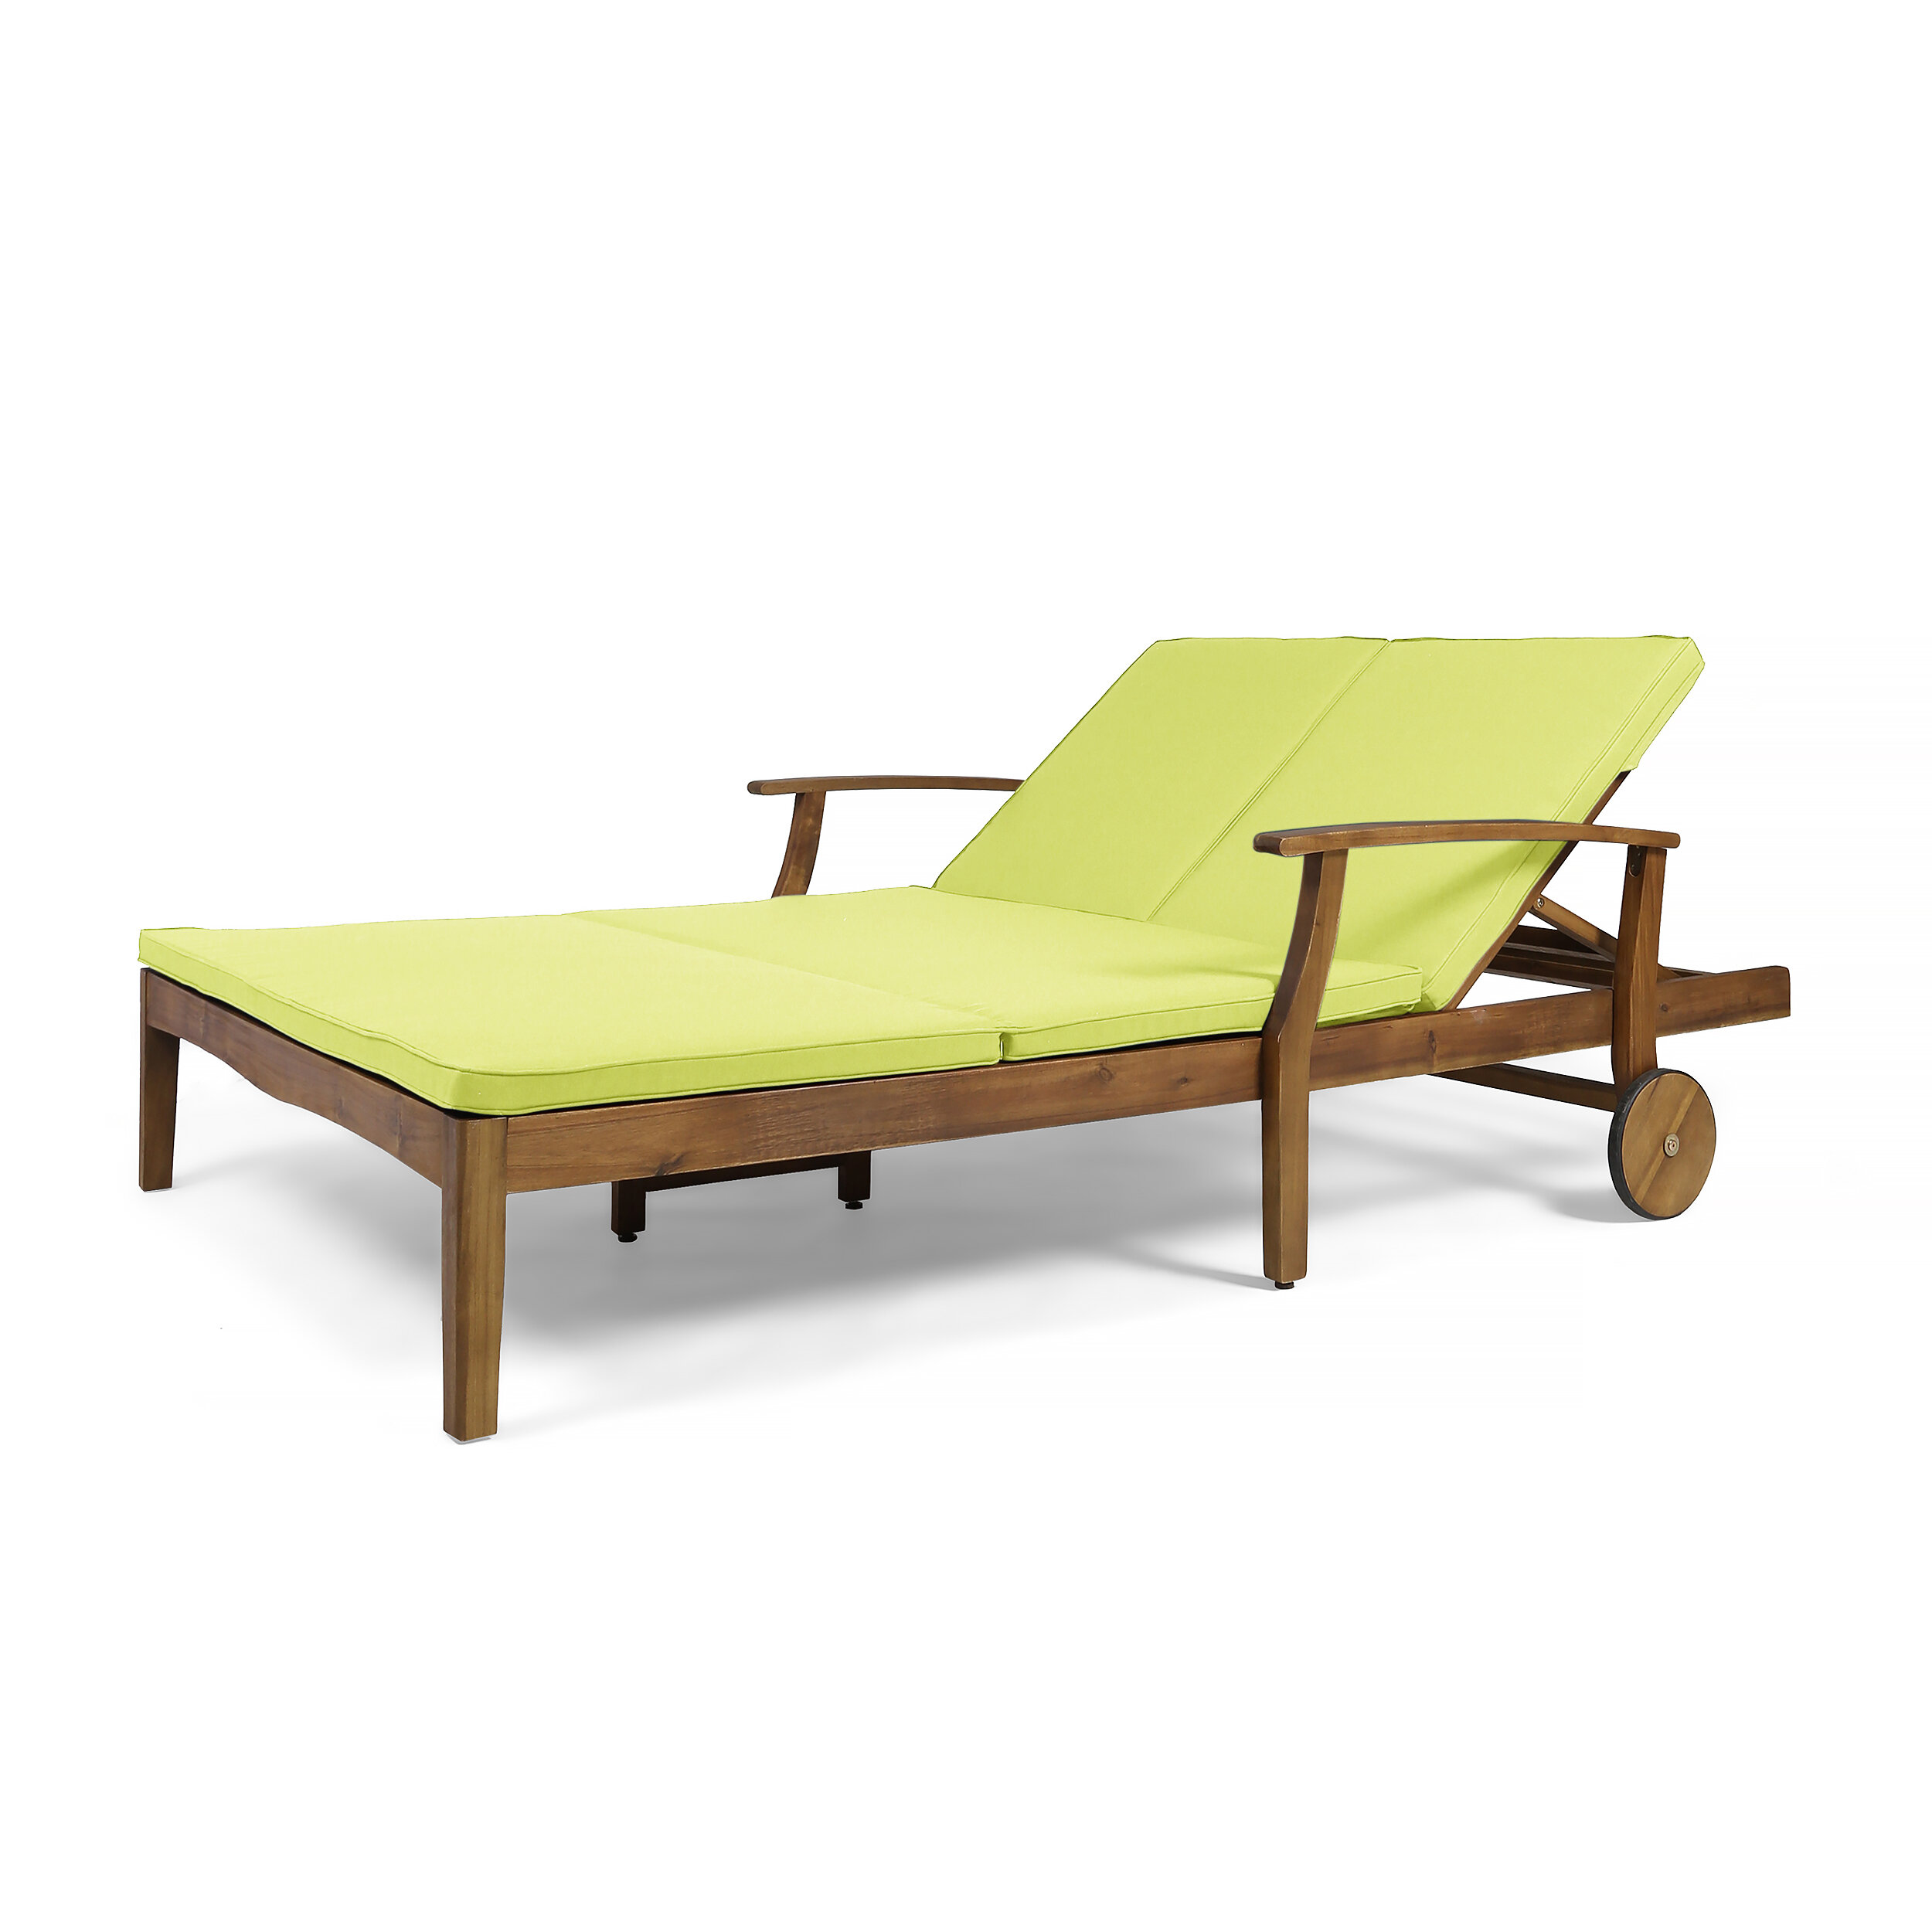 Fine Antonia Double Reclining Teak Chaise Lounge With Cushion Bralicious Painted Fabric Chair Ideas Braliciousco